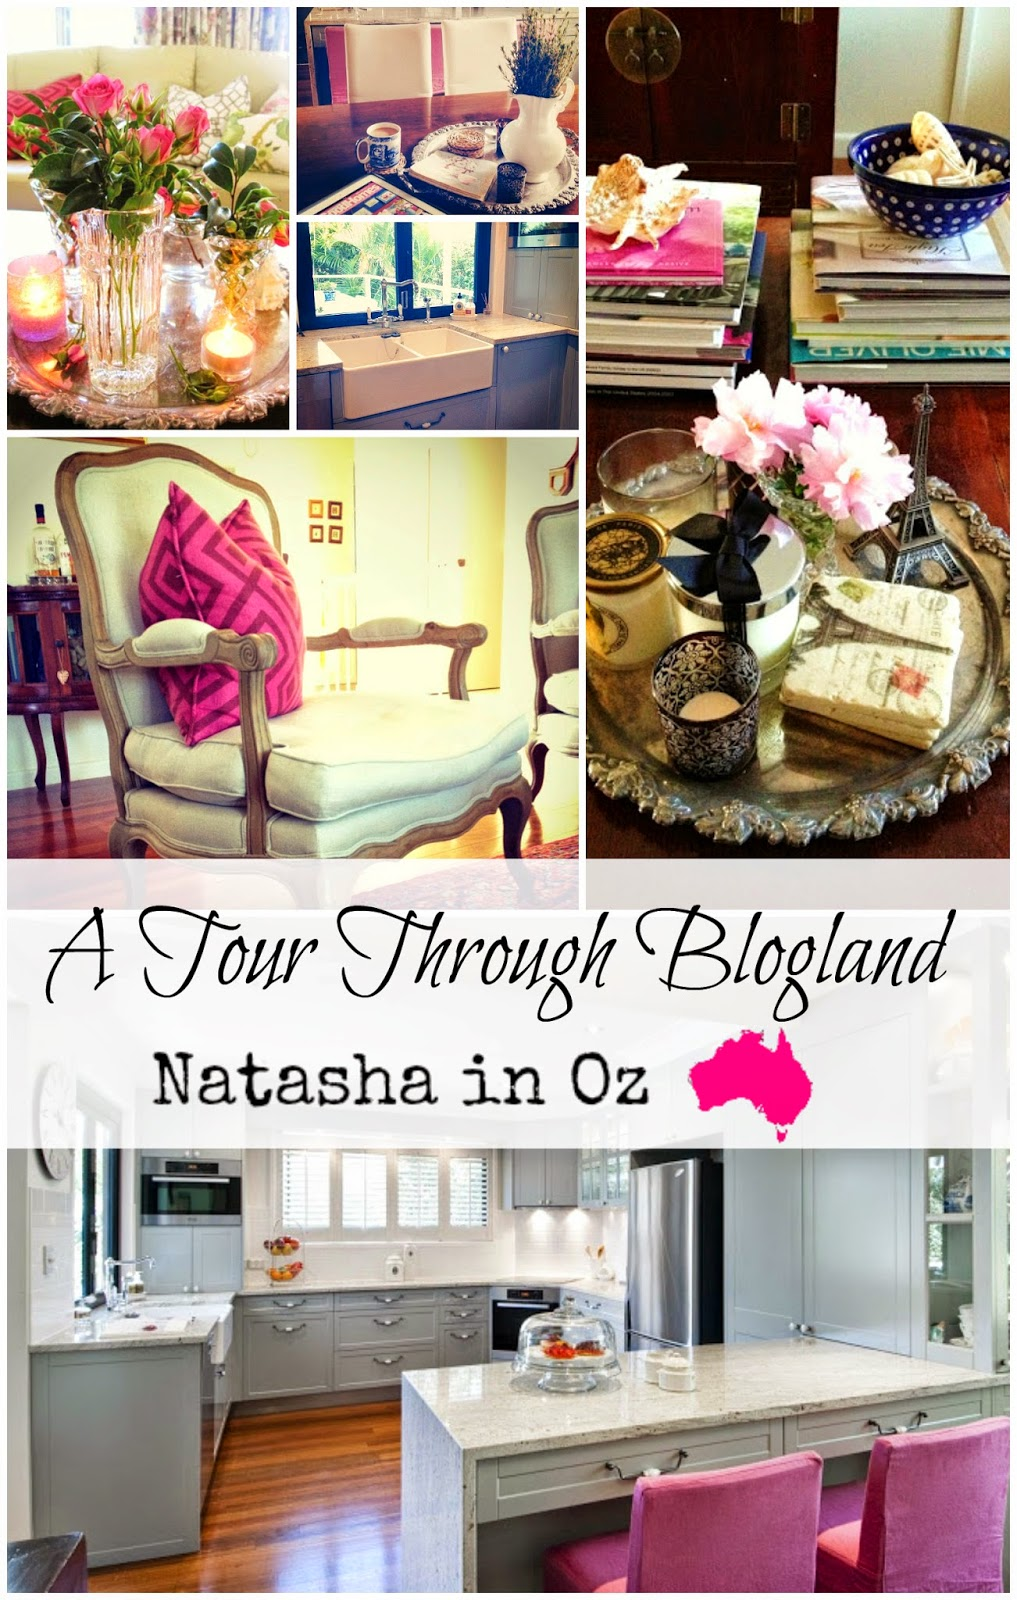 I'm on the Tour Through Blogland!